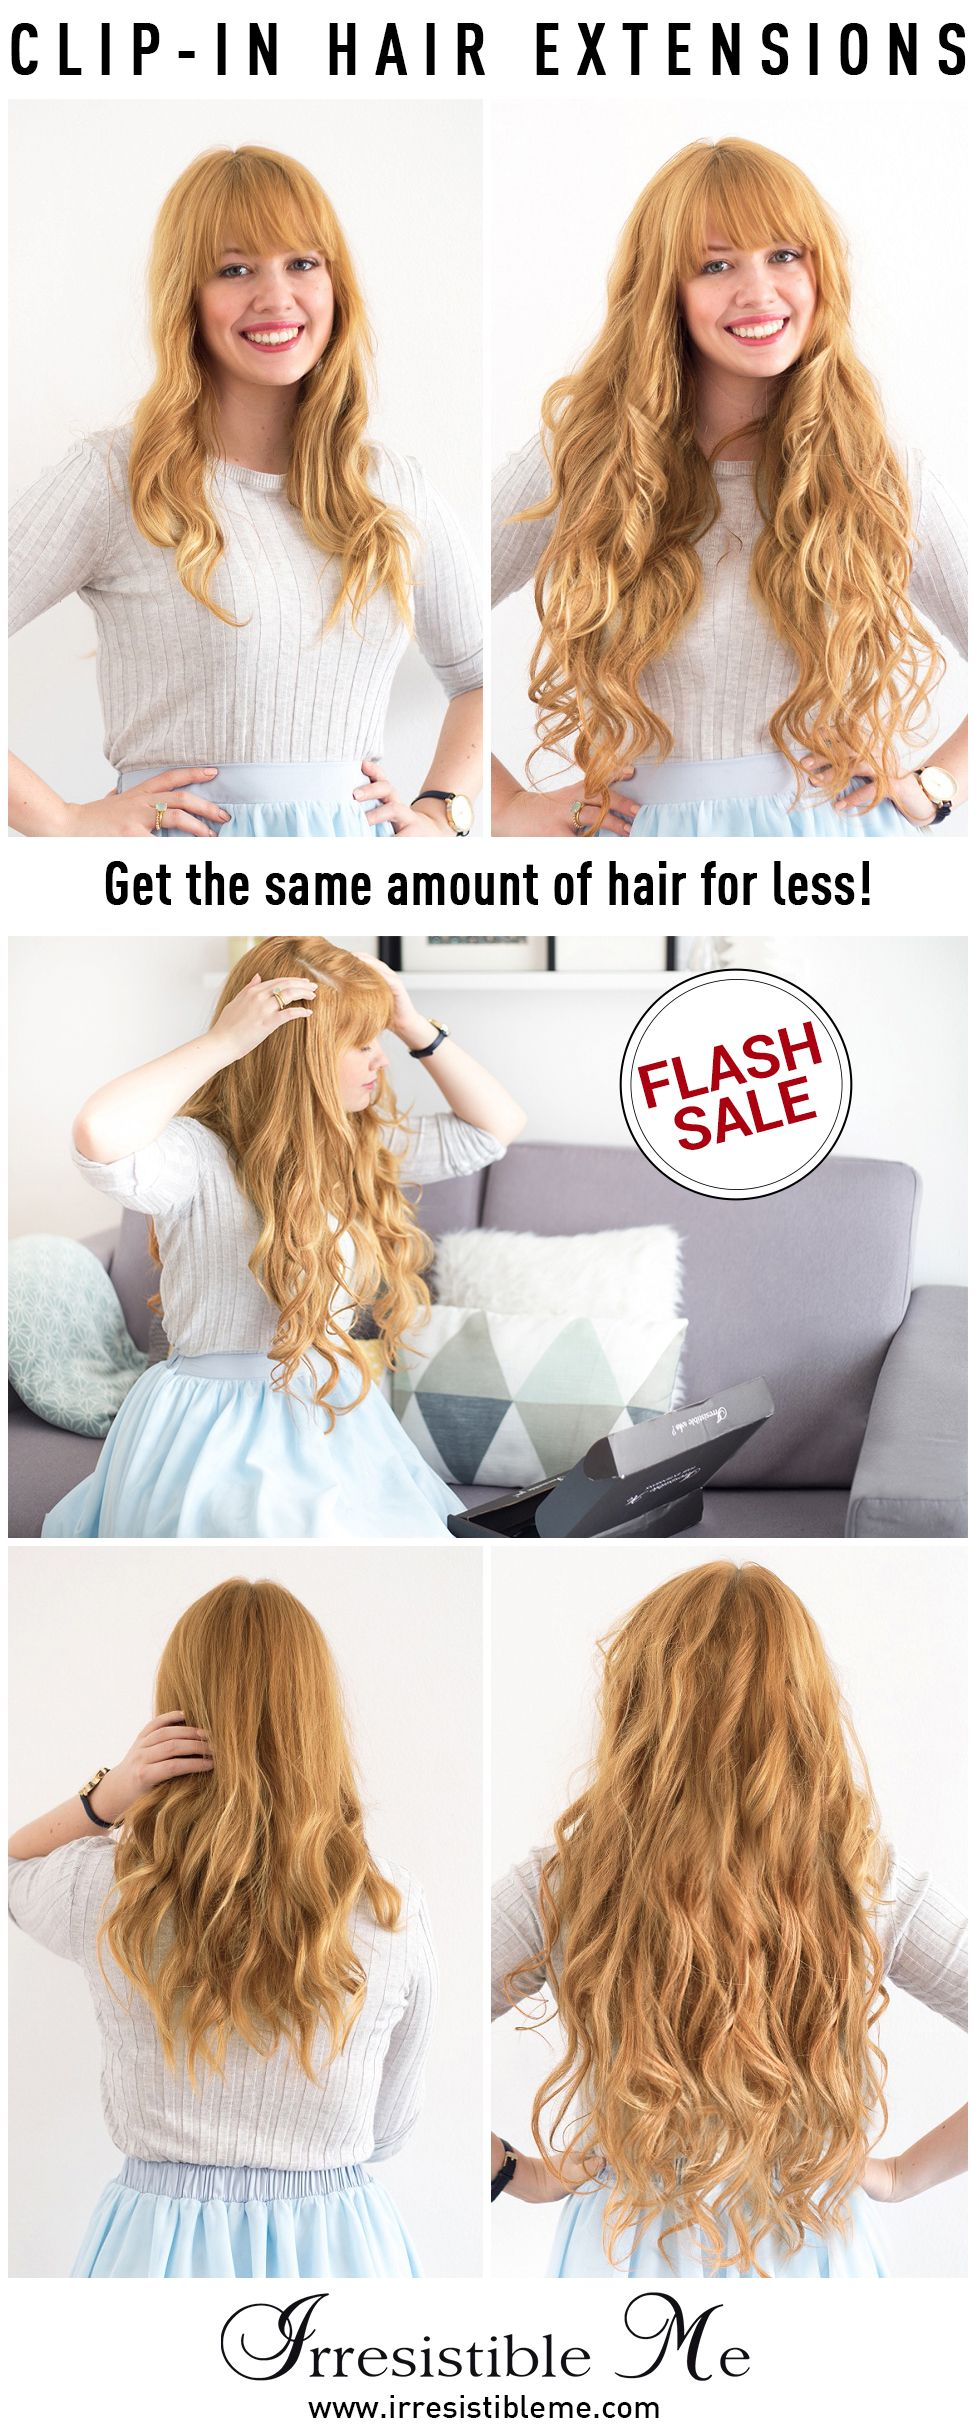 Make A Dramatic Hairstyle Change With Irresistible Me 100 Human Remy Clip In Hair Extensions You Can Add Length Clip In Hair Extensions Hair Hair Extensions